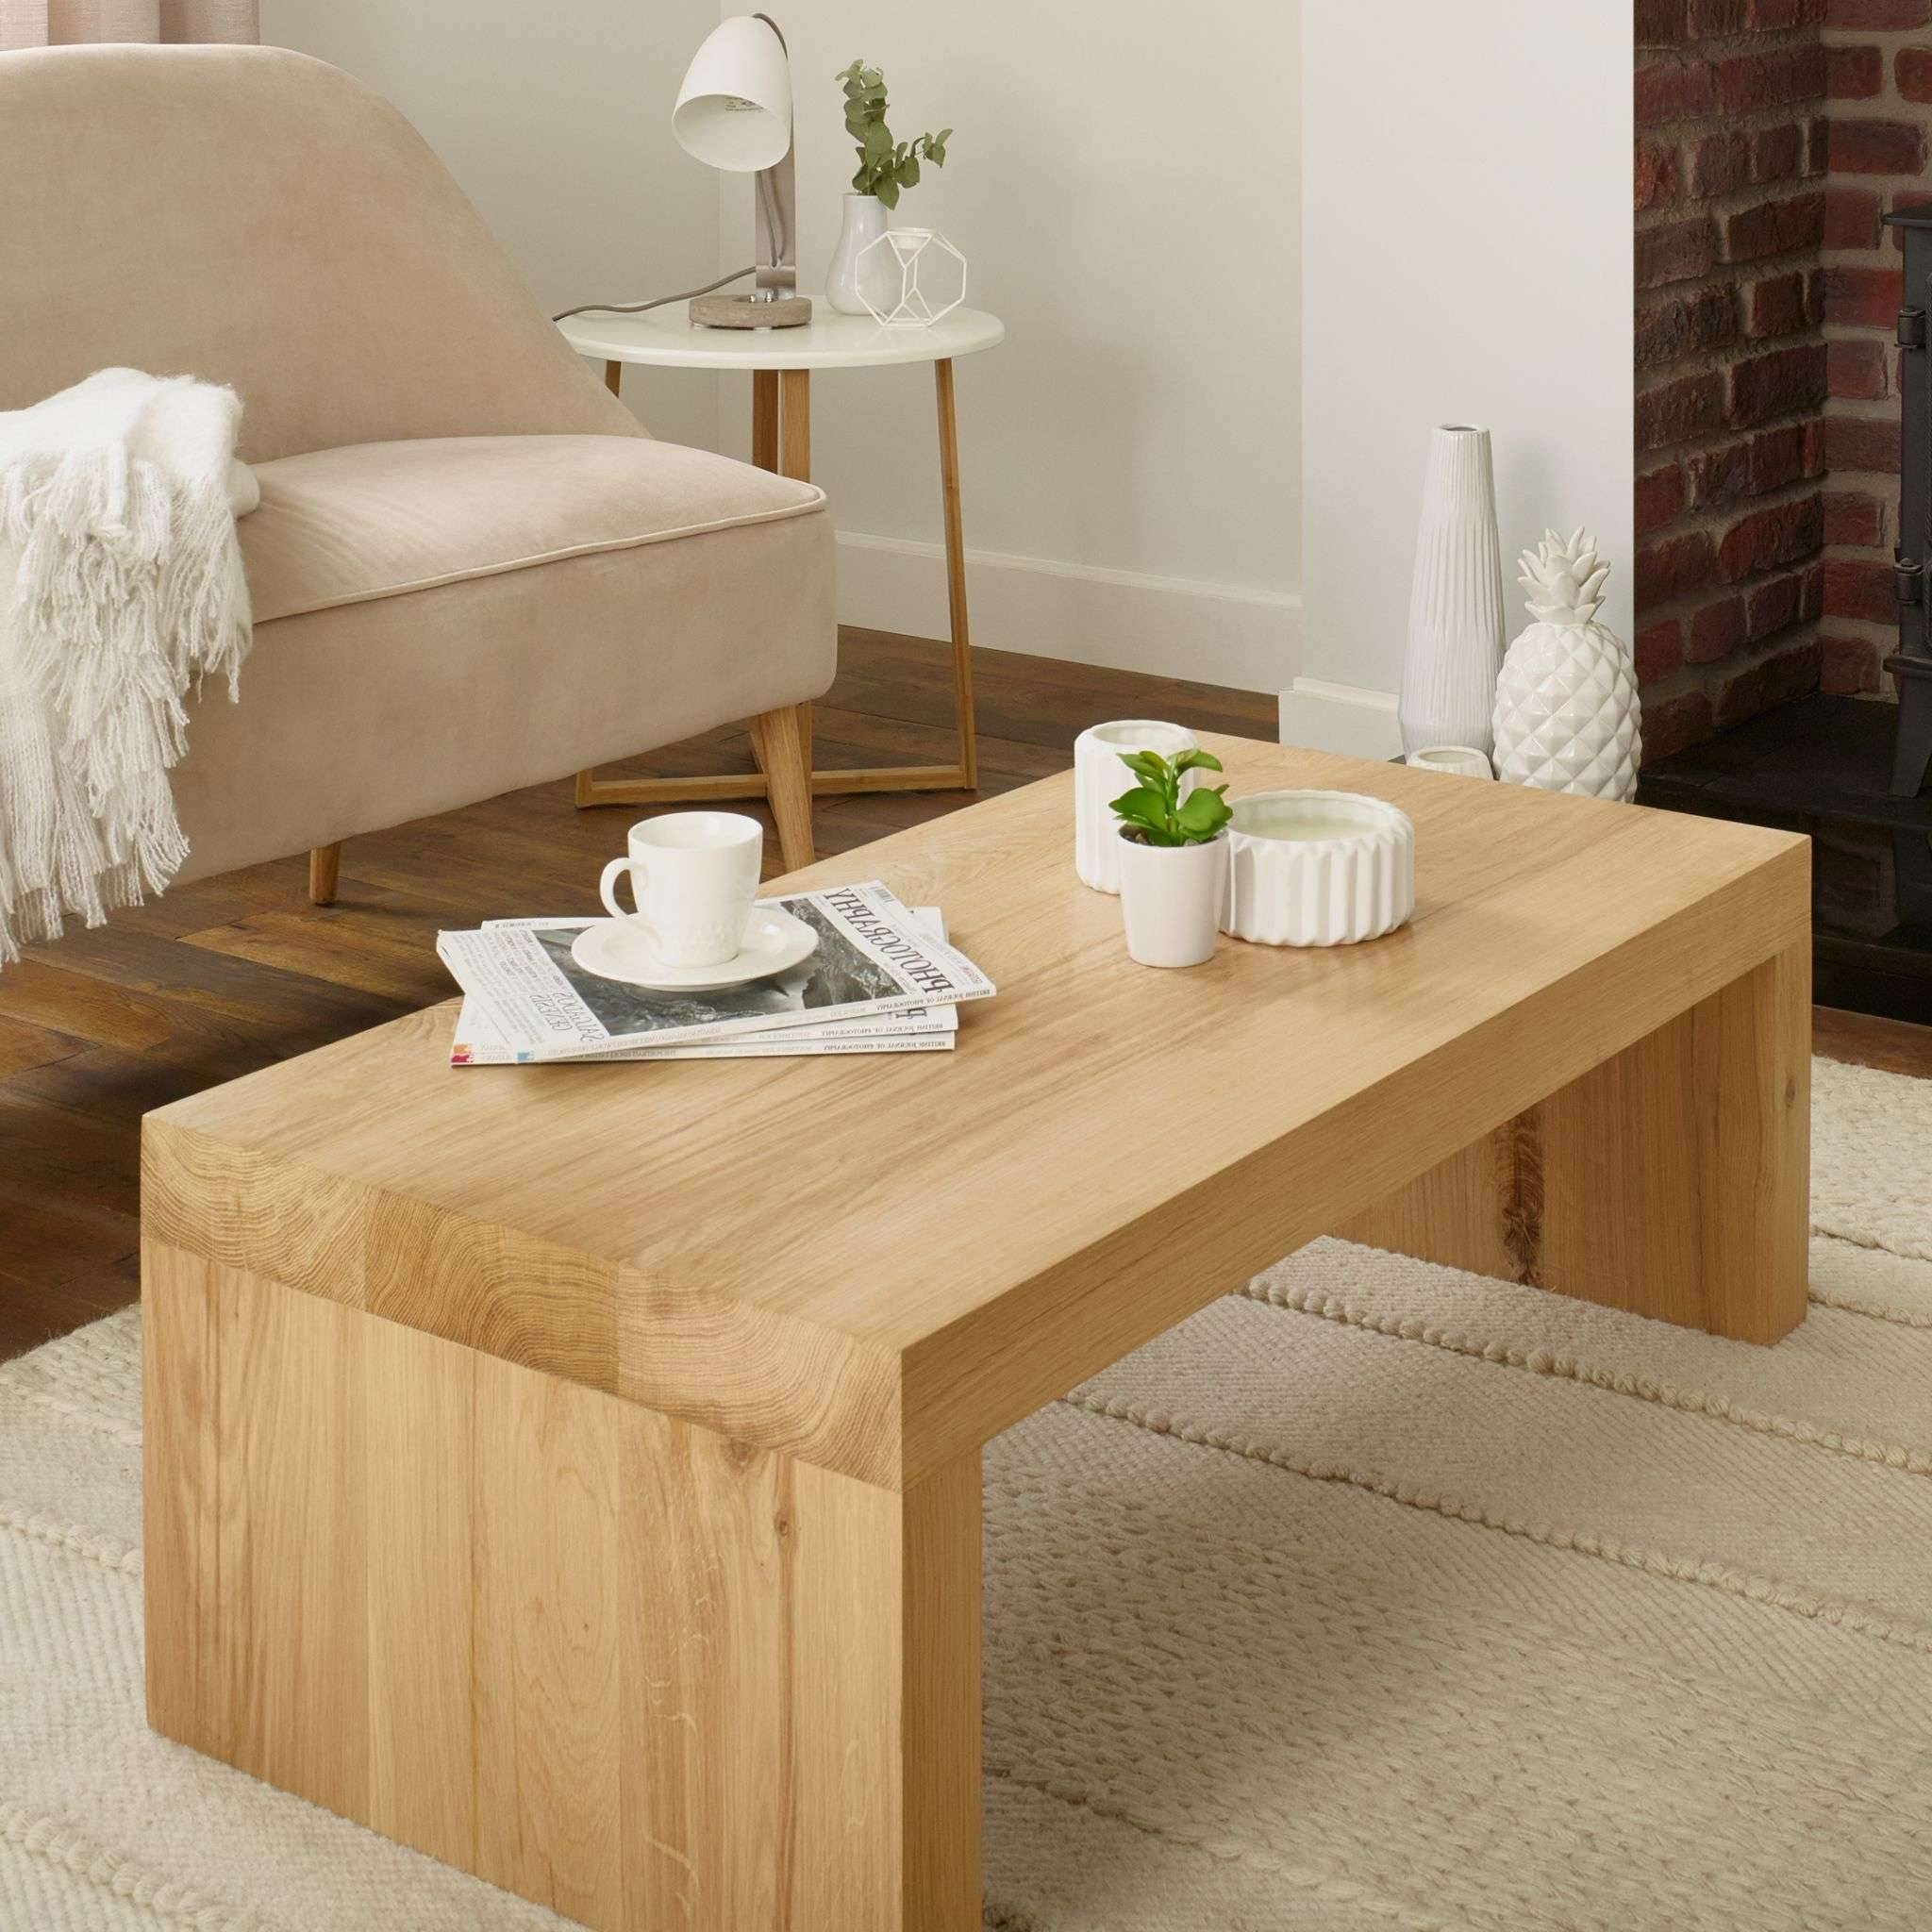 Oak Coffee Table Canterbury Solid French Rustic Beam Intended For Current Solid Oak Beam Coffee Table (View 11 of 20)